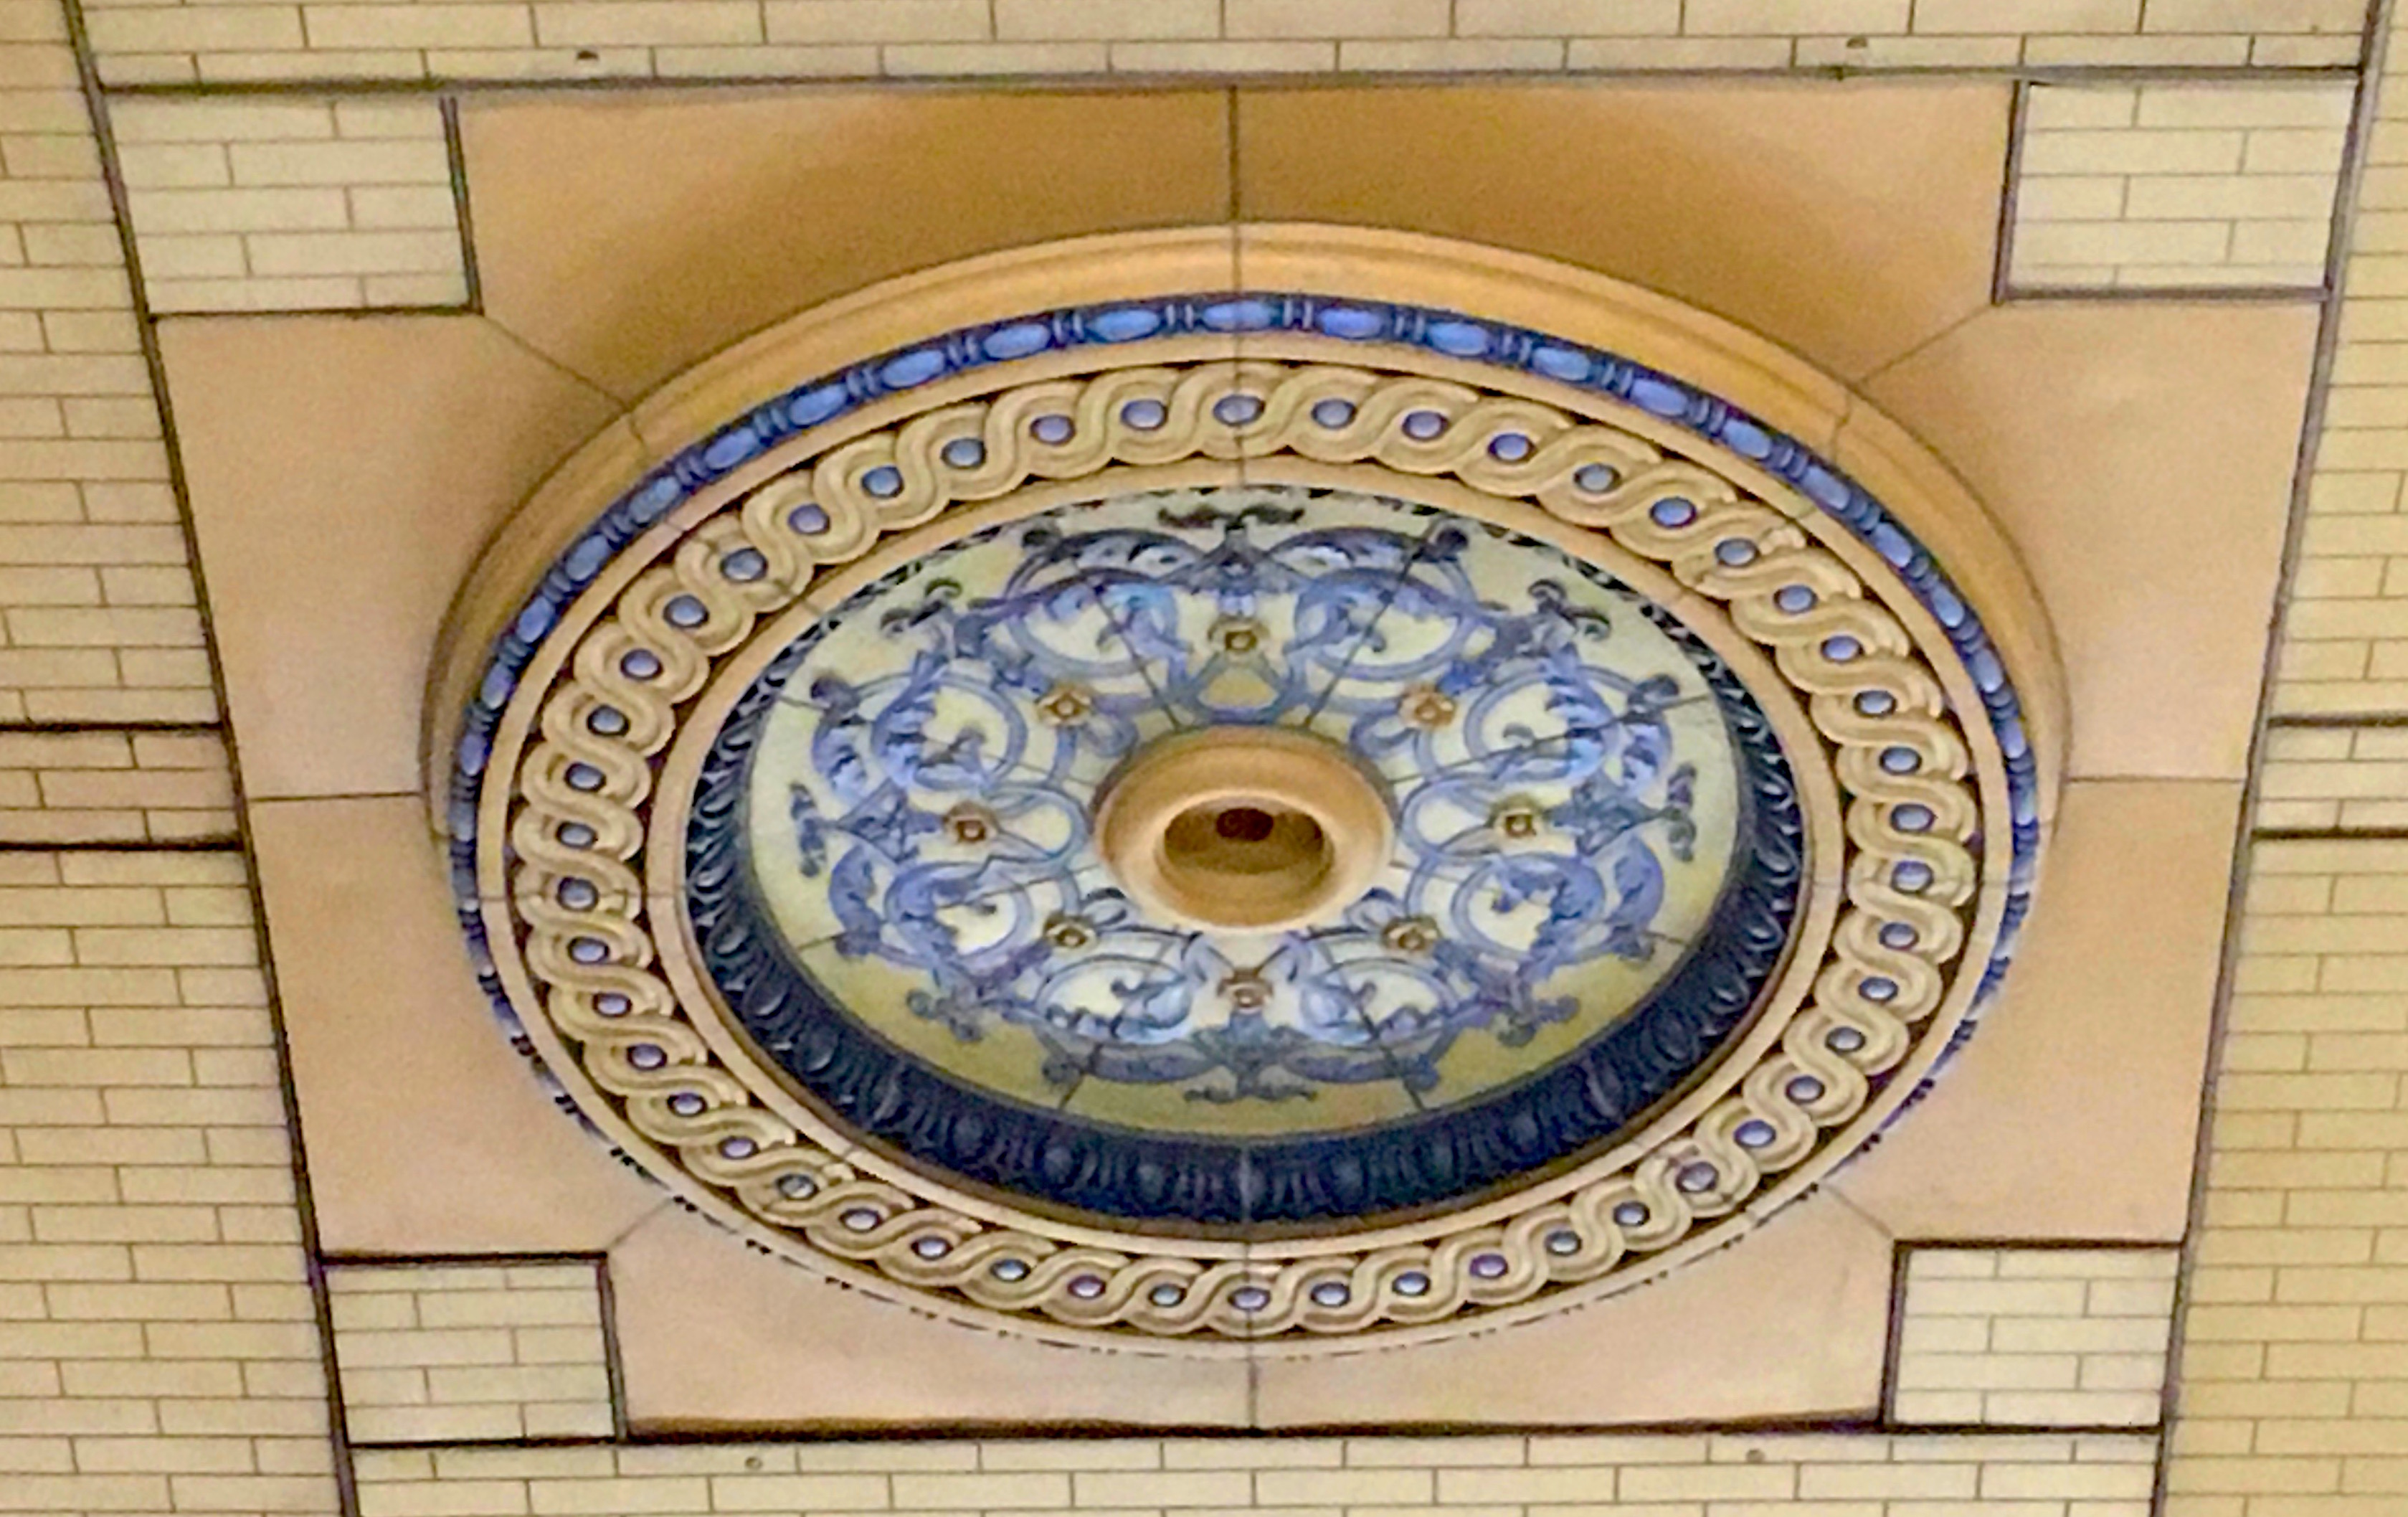 New Yorks Most Beautiful Subway Light Fixture Ephemeral New York - The 12 most beautiful metro stations in the world